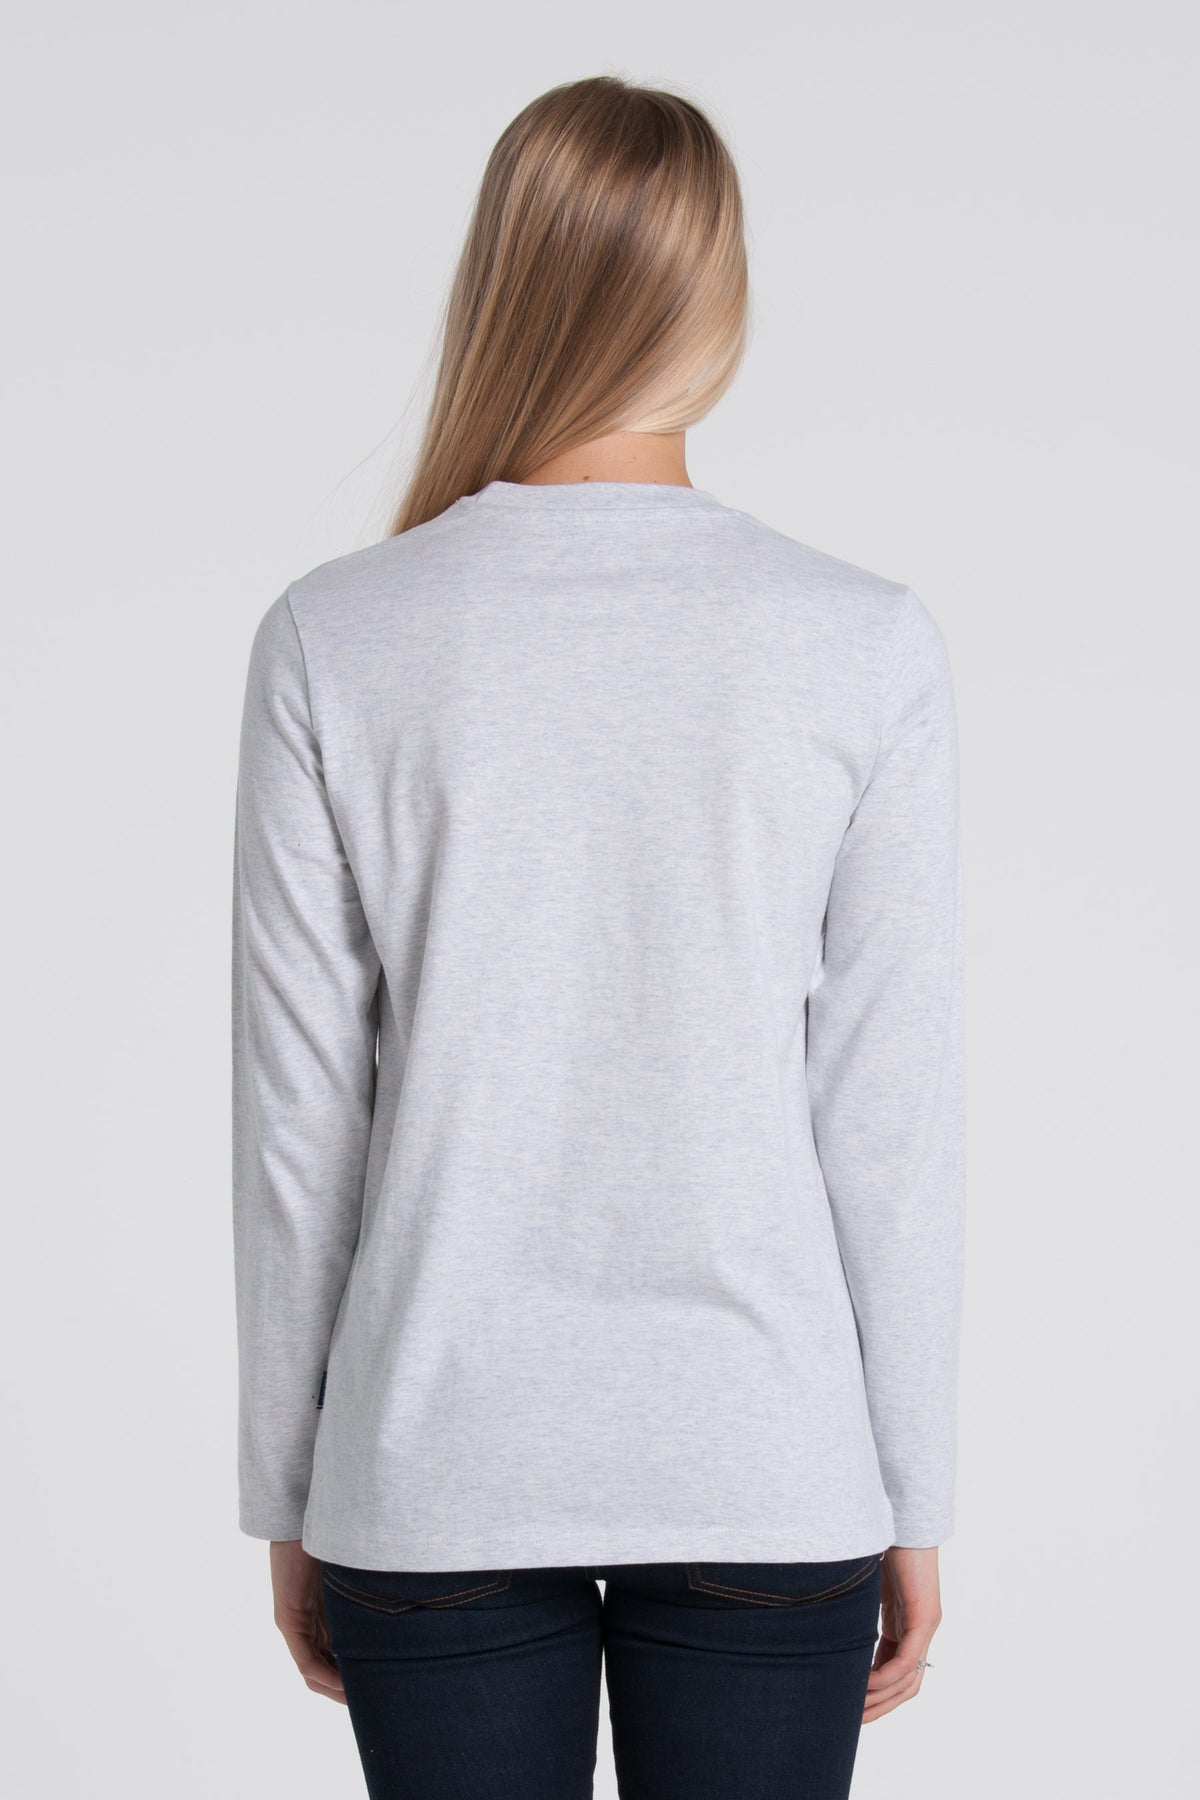 Eventide Long Sleeve - Silver Marle